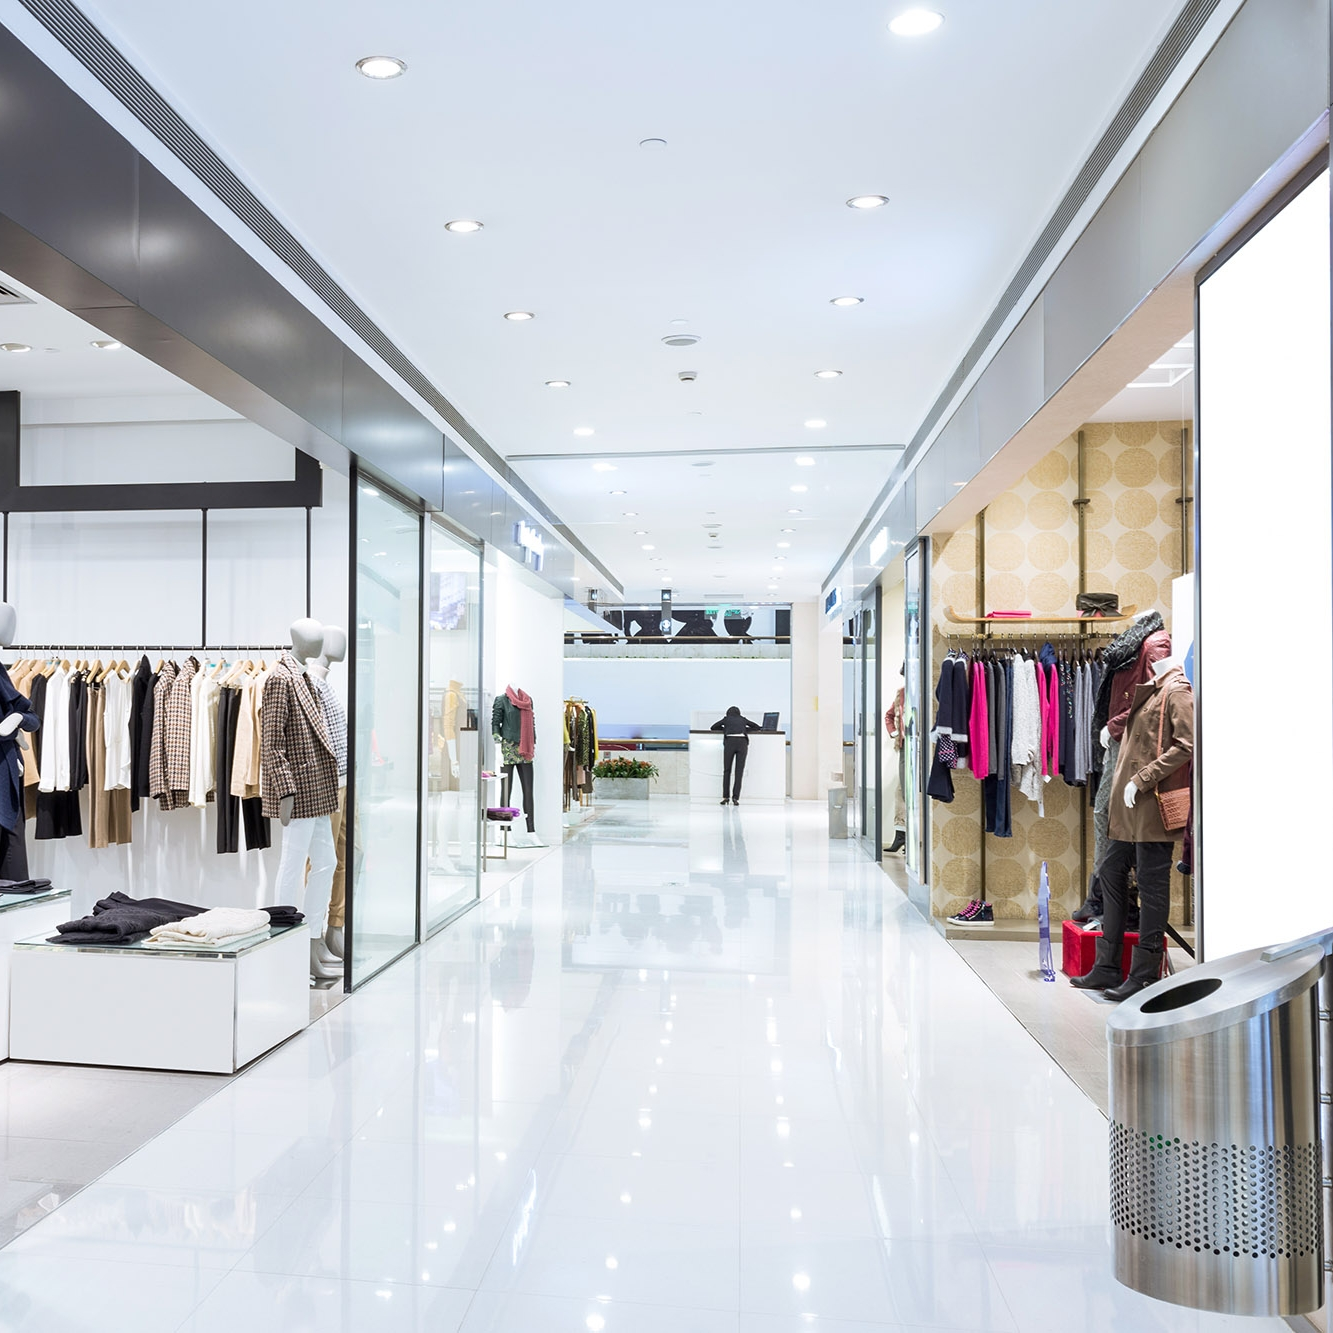 Retail Cleaning - Keep customers happy in a clean working environment using our efficient service